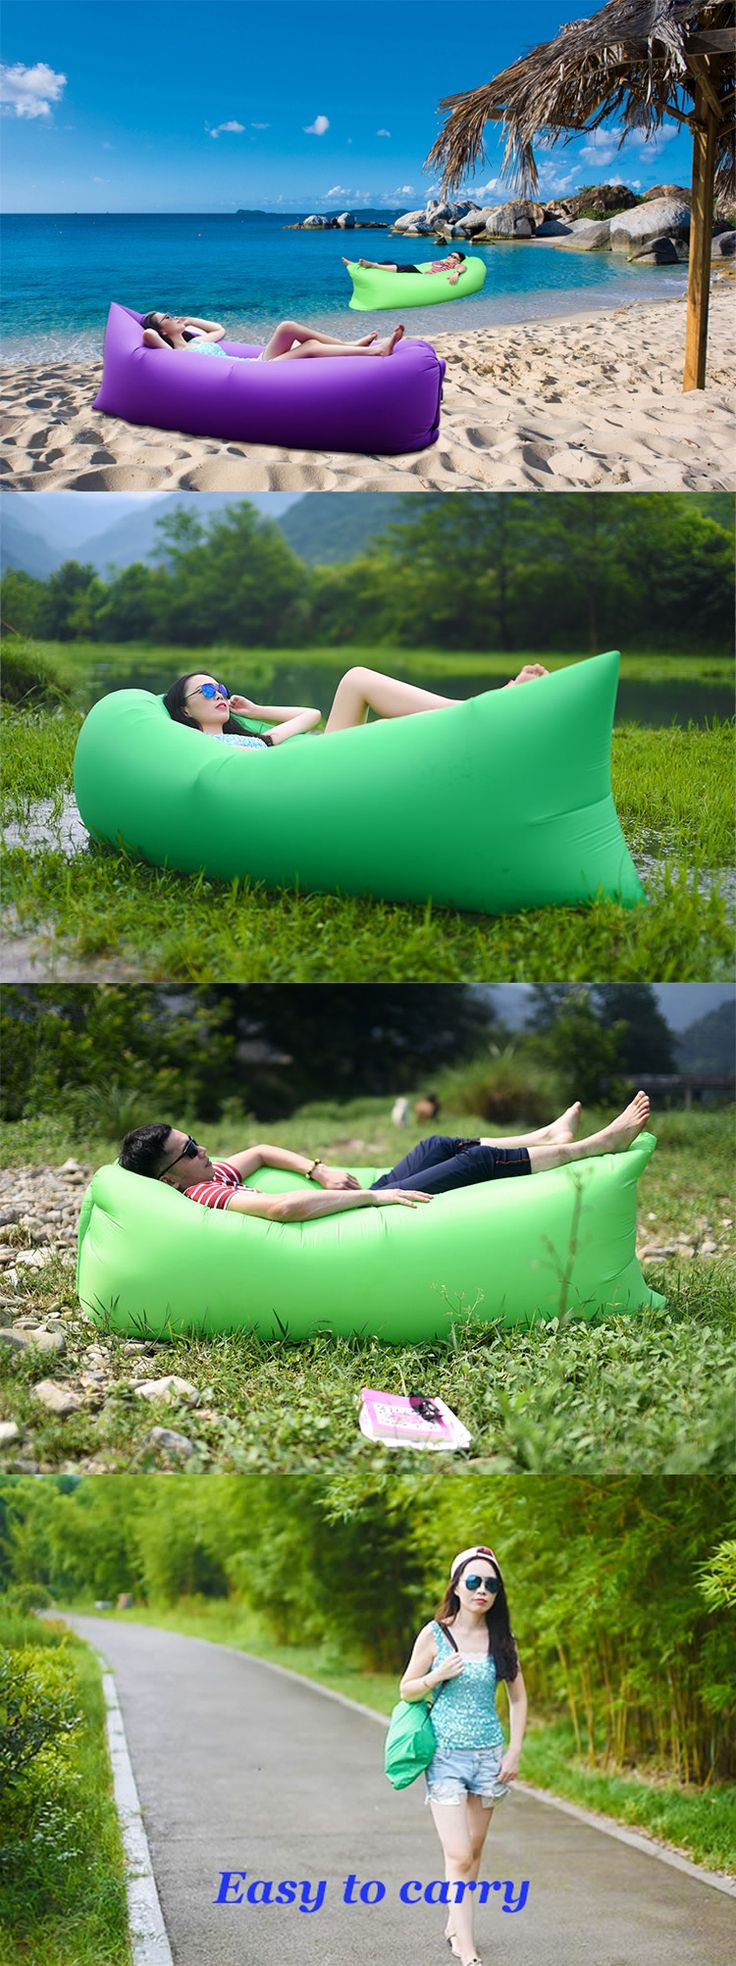 Inflatable camping sofa! Easy to carry. Perfect for all outdoor activities such as travelling, camping, barbecuing, festivals, beach trips, hanging out in the park and many more.